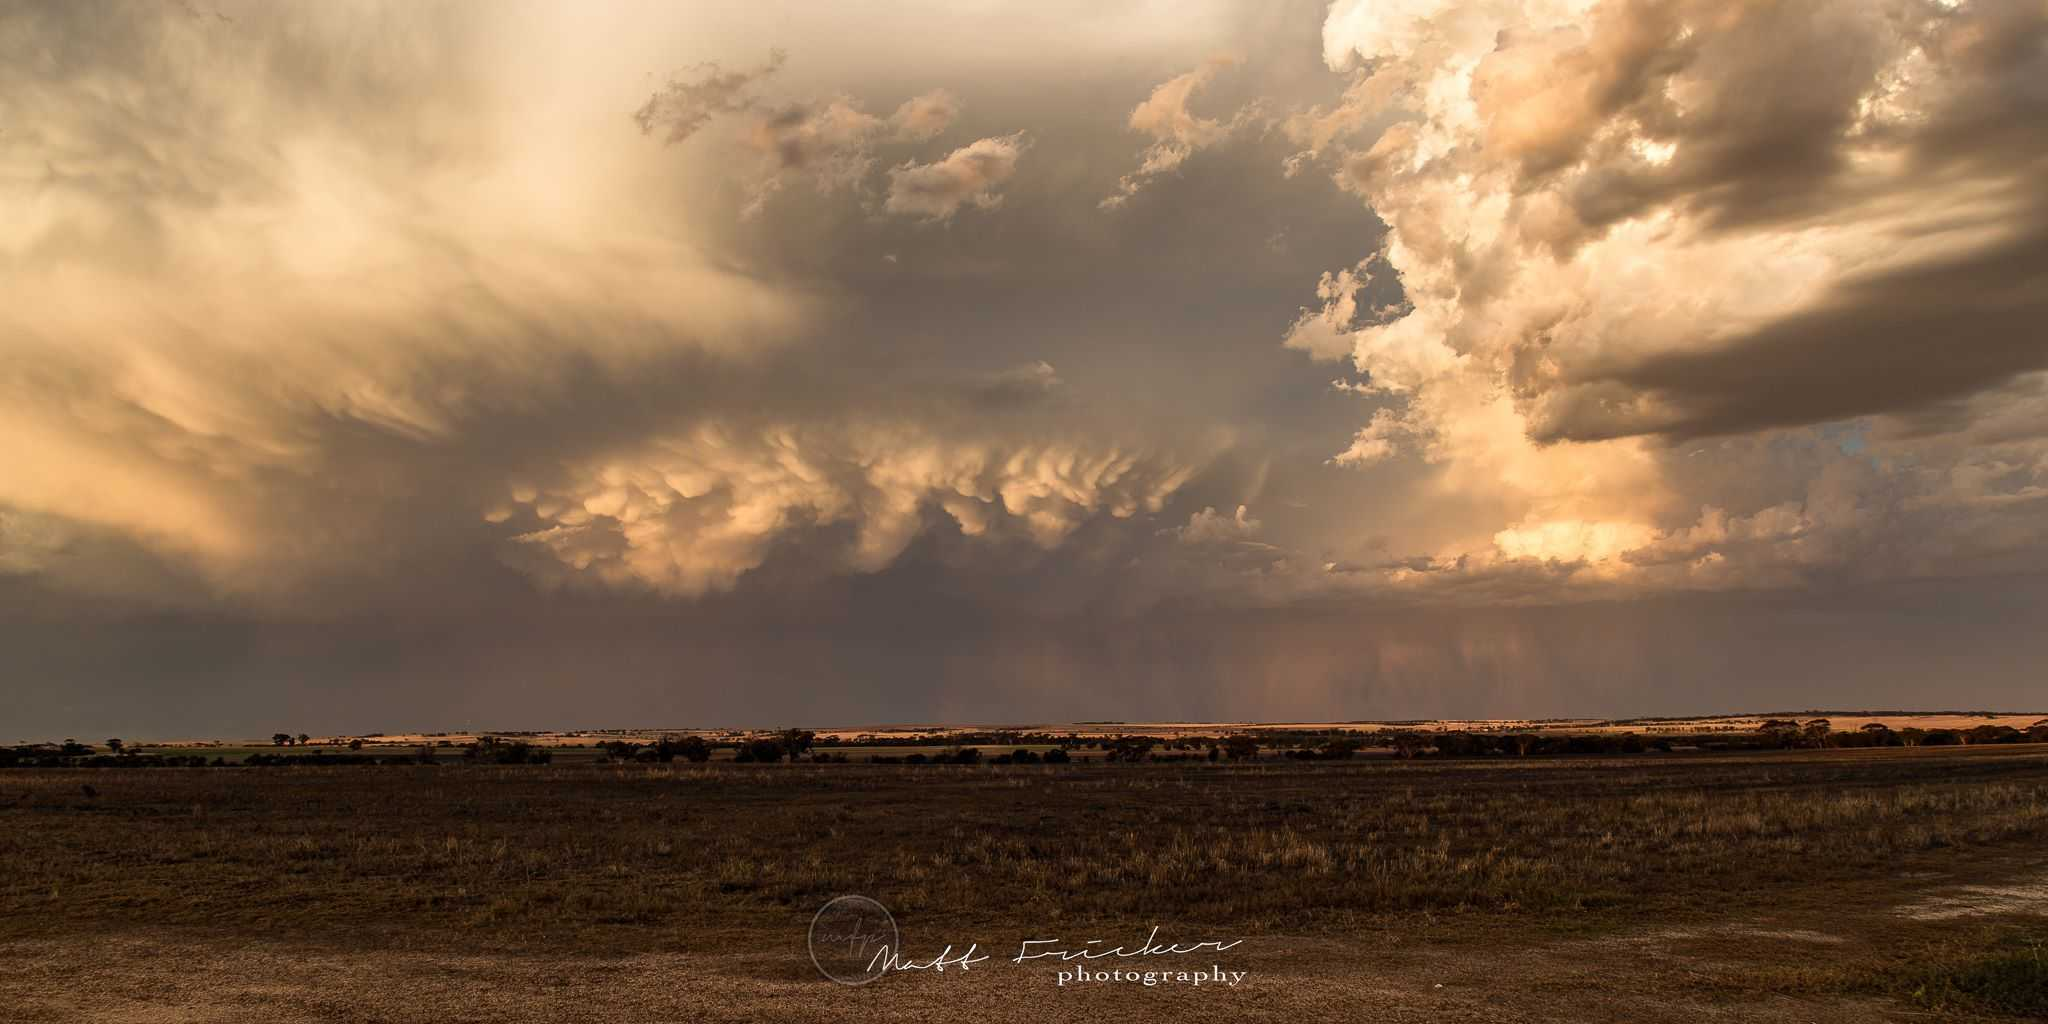 6th March 2017, near Cunderdin, Western Australia. Not bad for a moderate storm forecast day. This thunderstorm dumped heaps of rain had a very strong gust front that whipped up lots of dust. Not long after getting this photo I had to relocate as I was worried about possible hail.